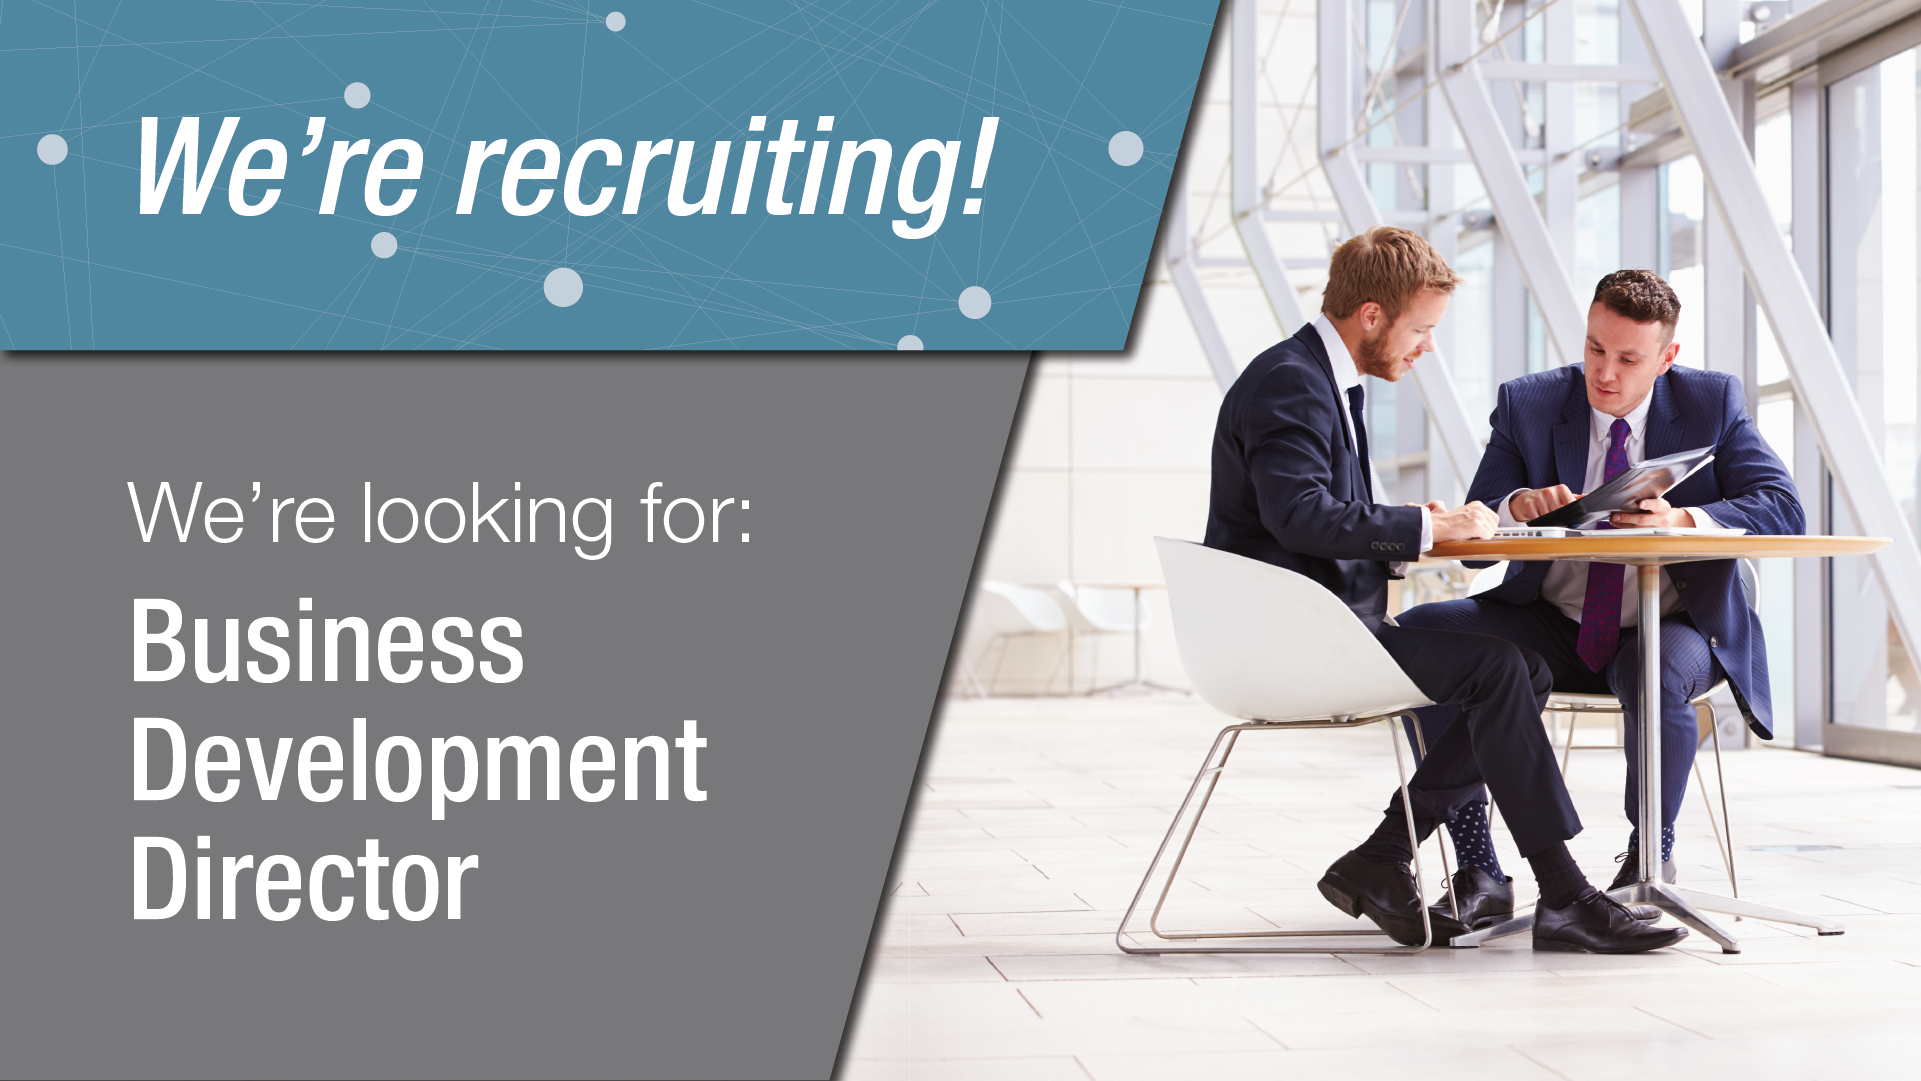 We're recruiting! We're look for: Business Development Director.